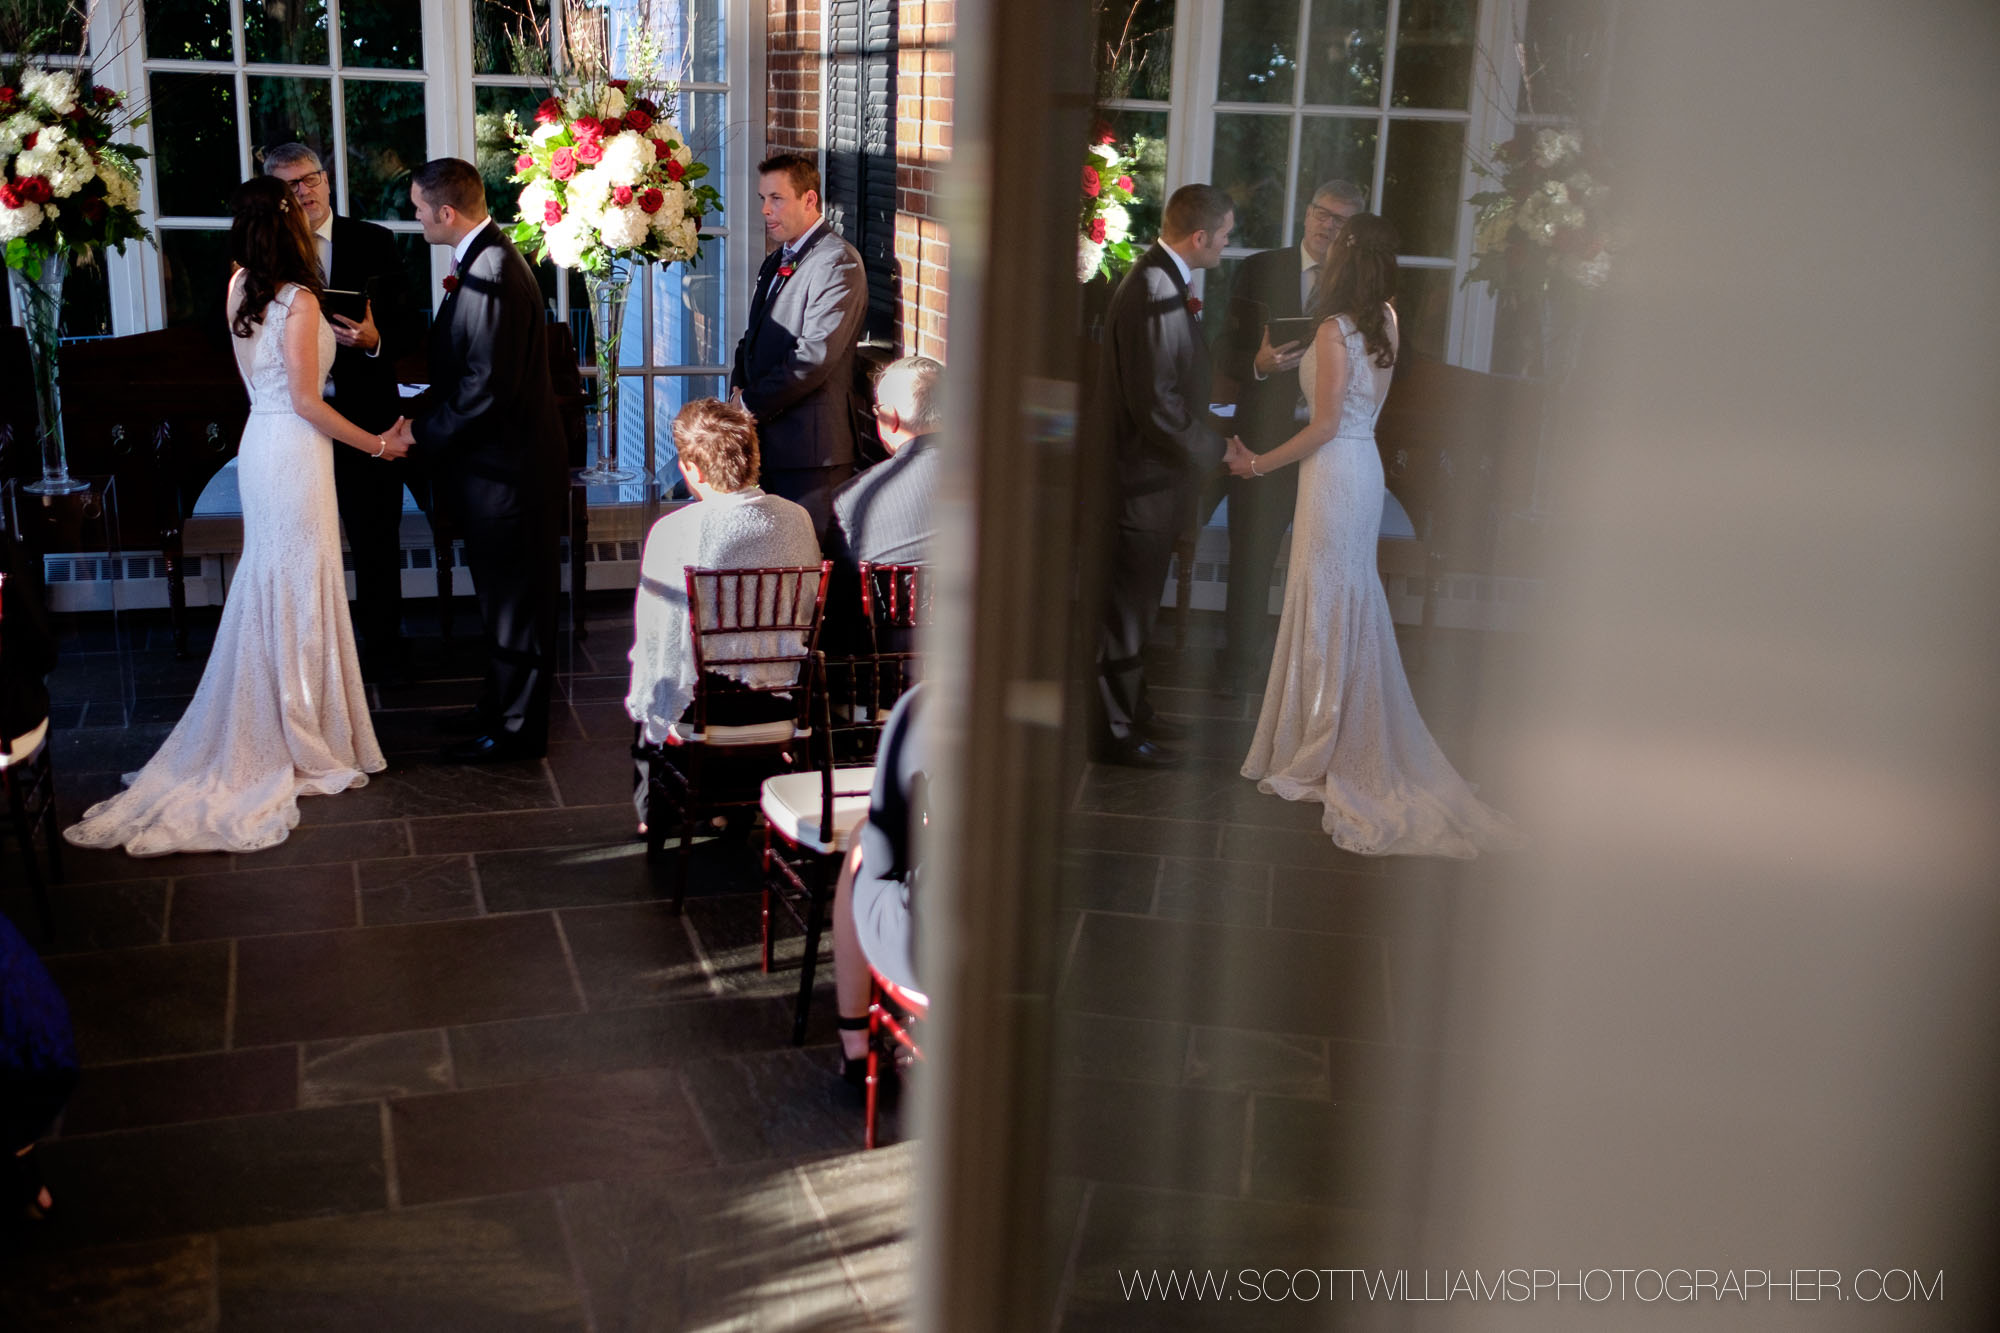 A wedding photograph from an intimate fall wedding ceremony at Langdon Hall in Cambridge, Ontario.